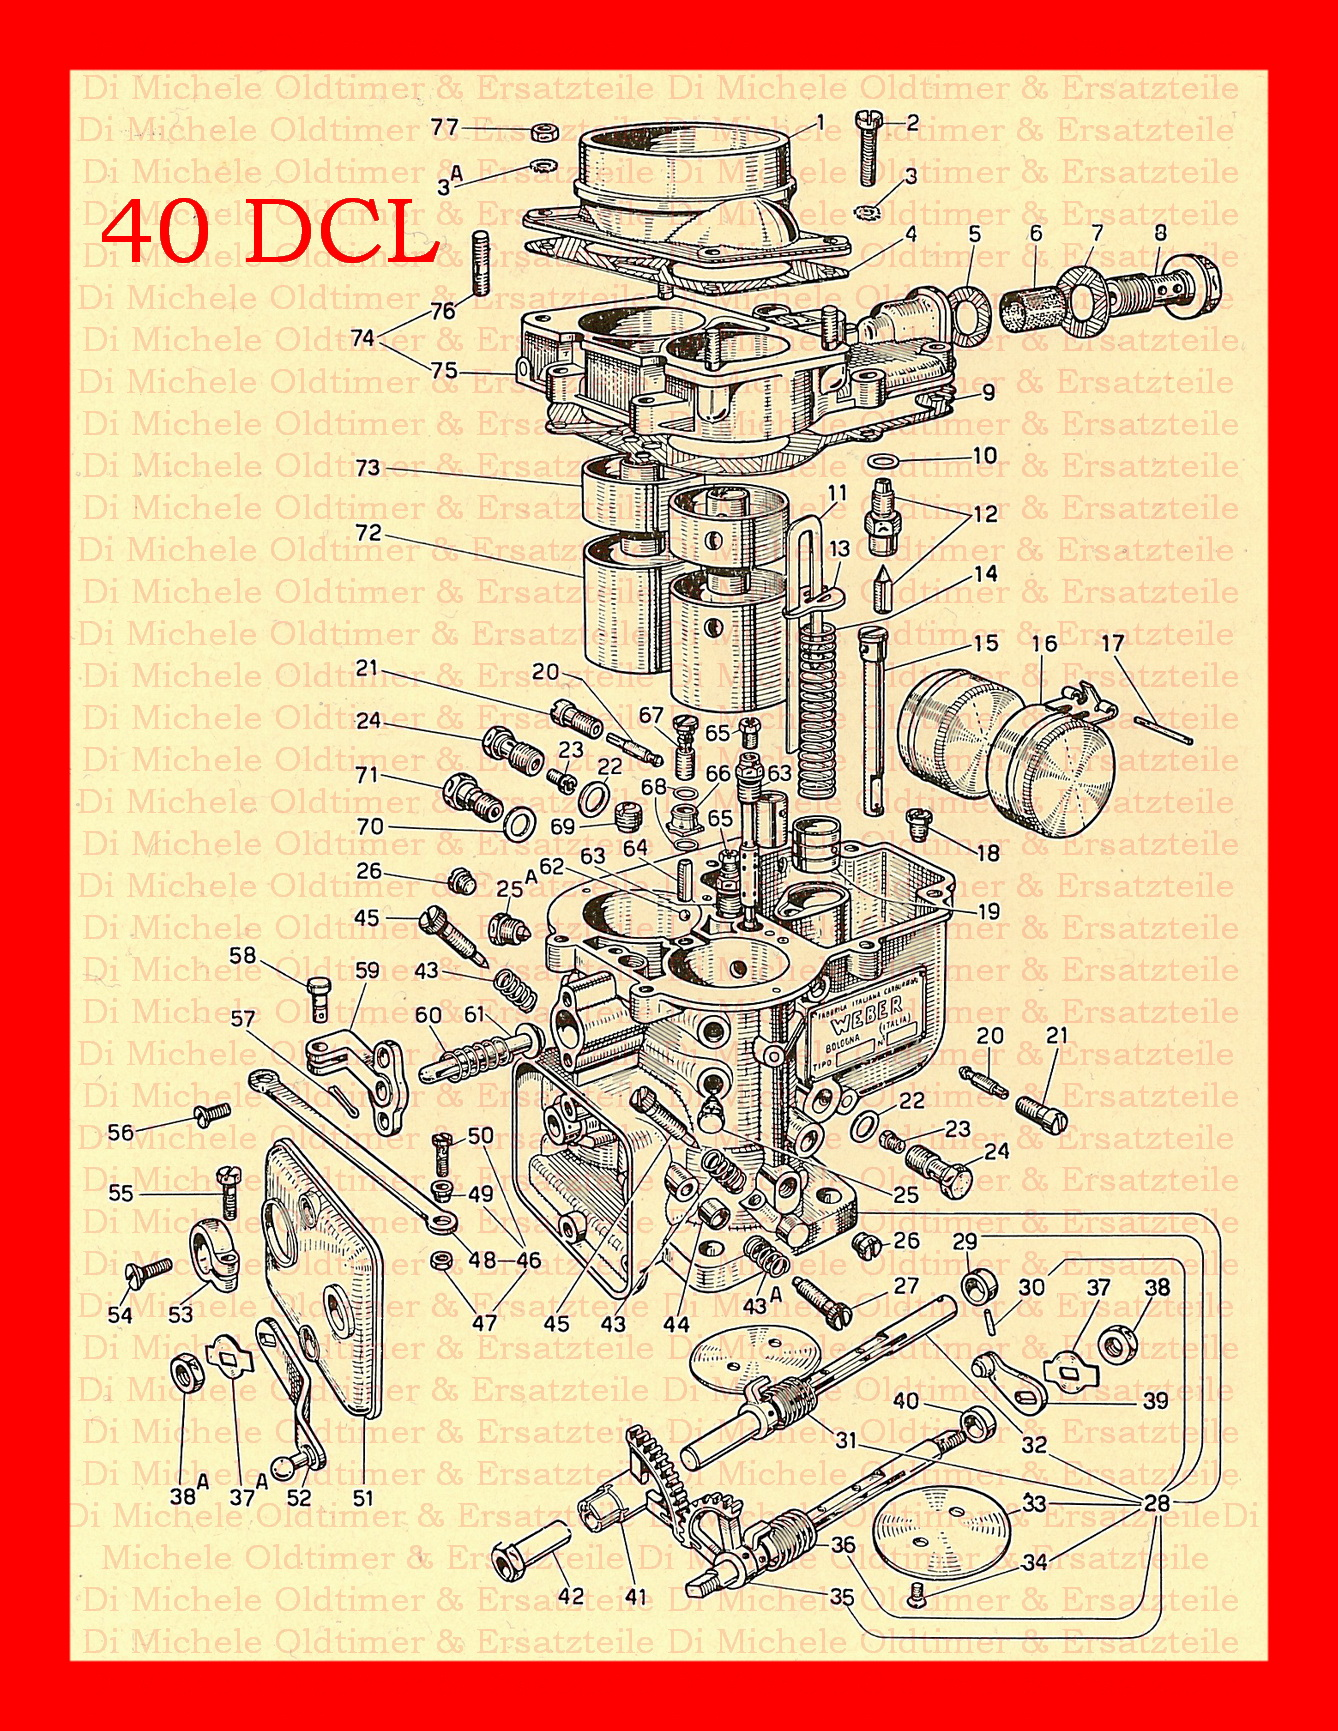 40_DCL